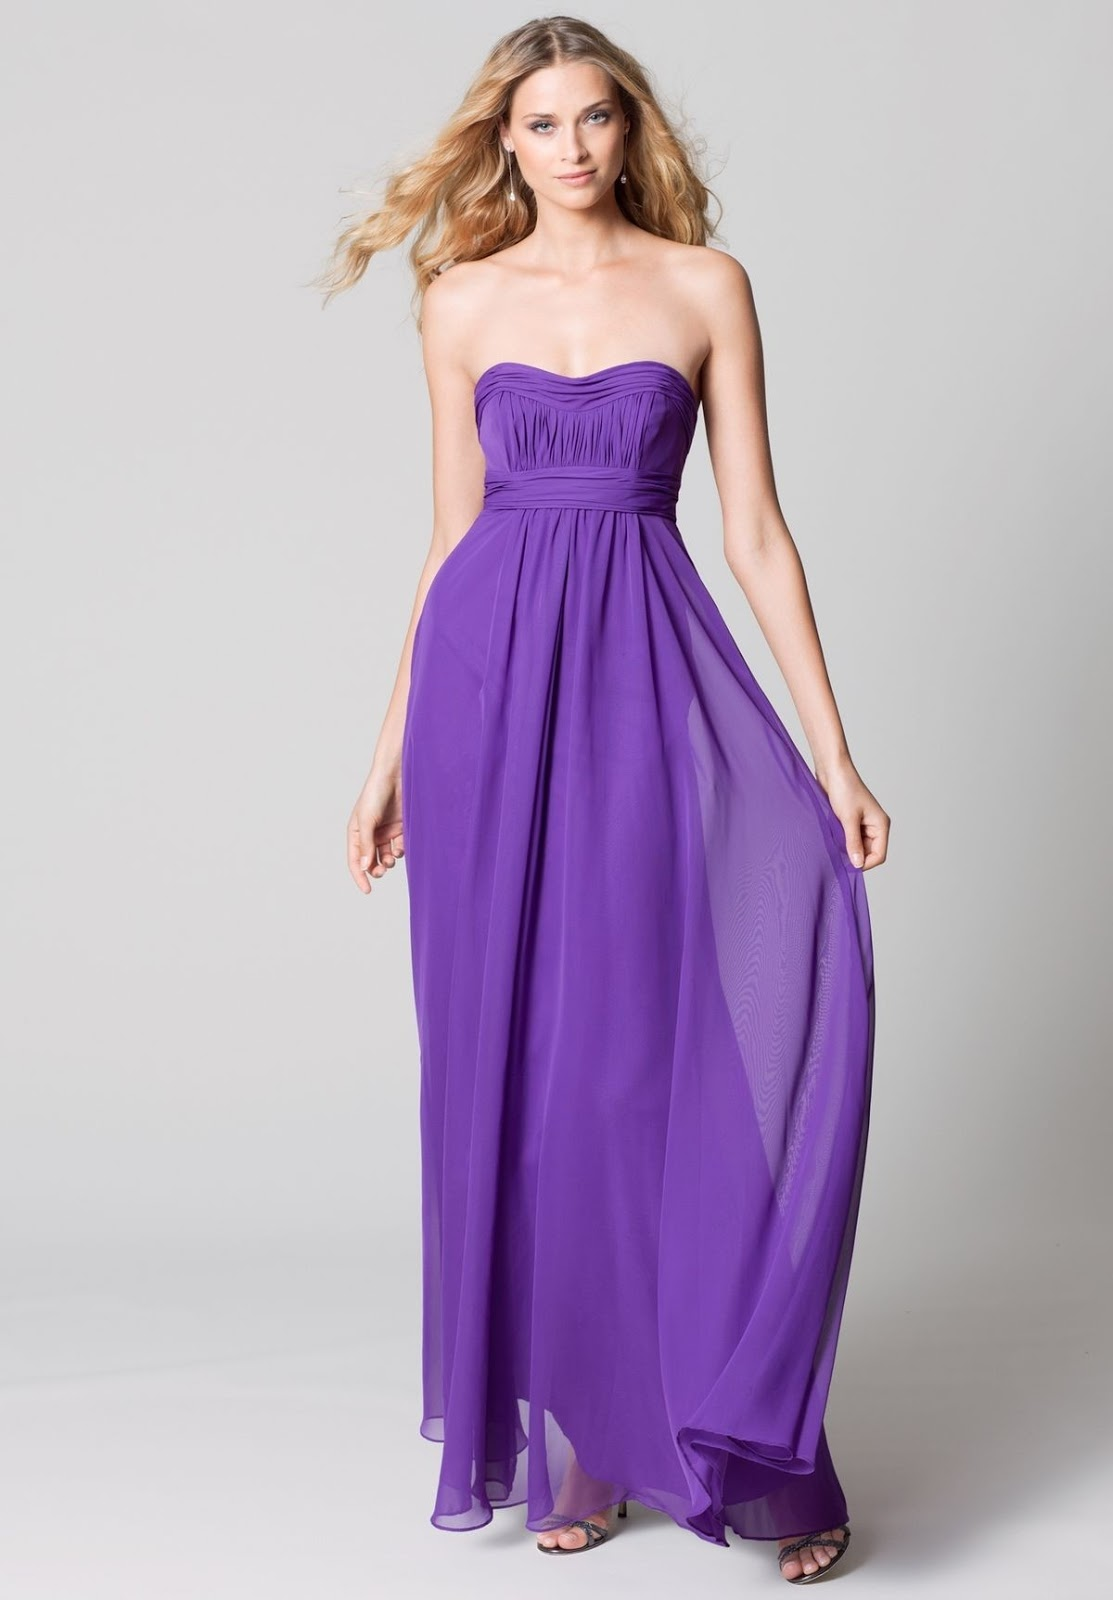 Purple dresses bridesmaid wedding dress shops purple dresses bridesmaid 22 ombrellifo Image collections